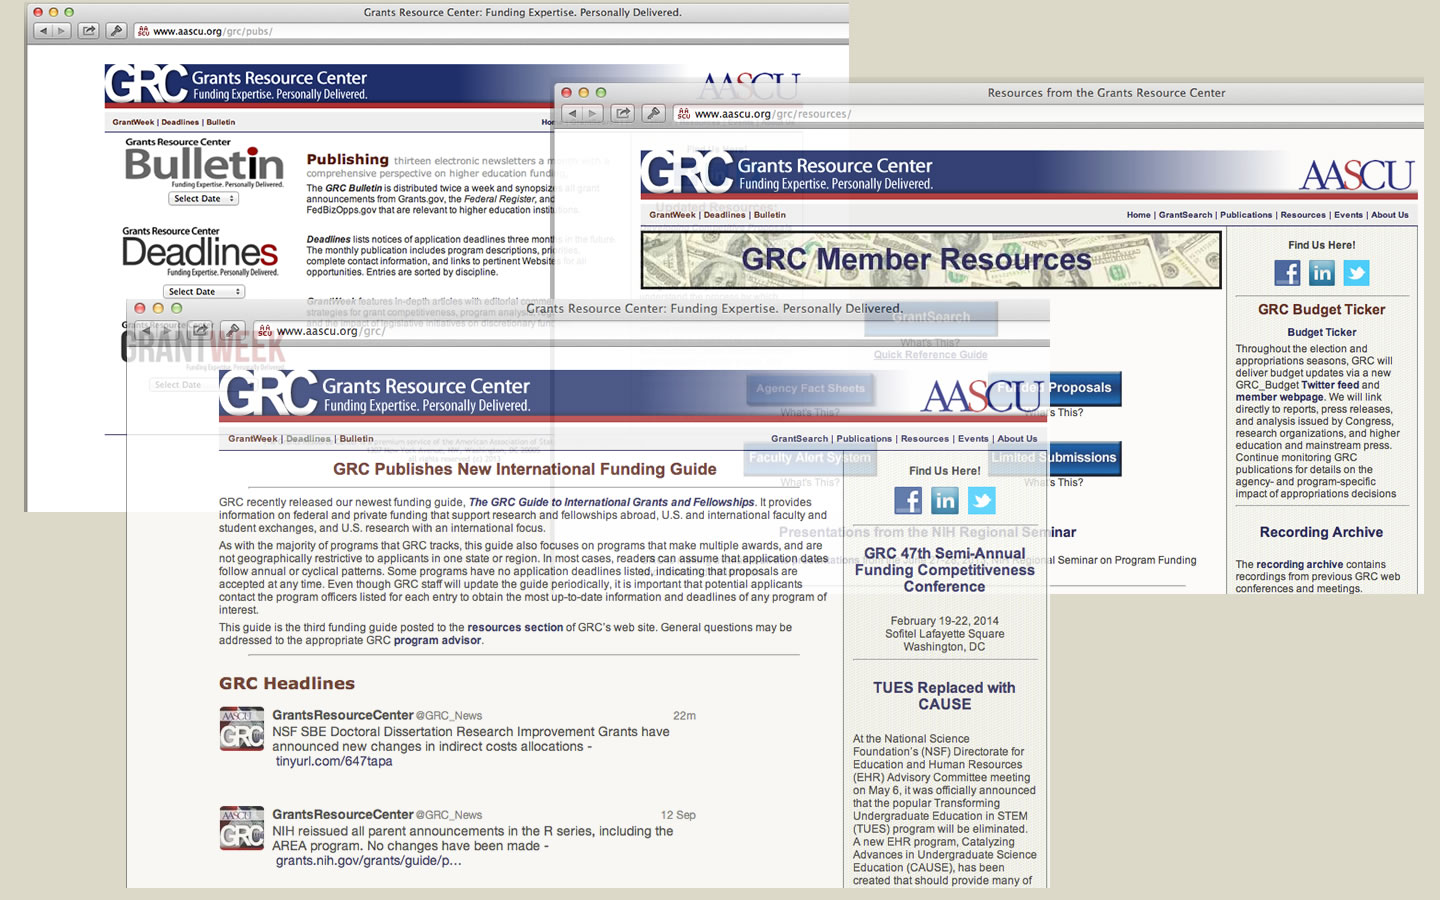 Grants Resource Center Member Websit - aascu.org/grc